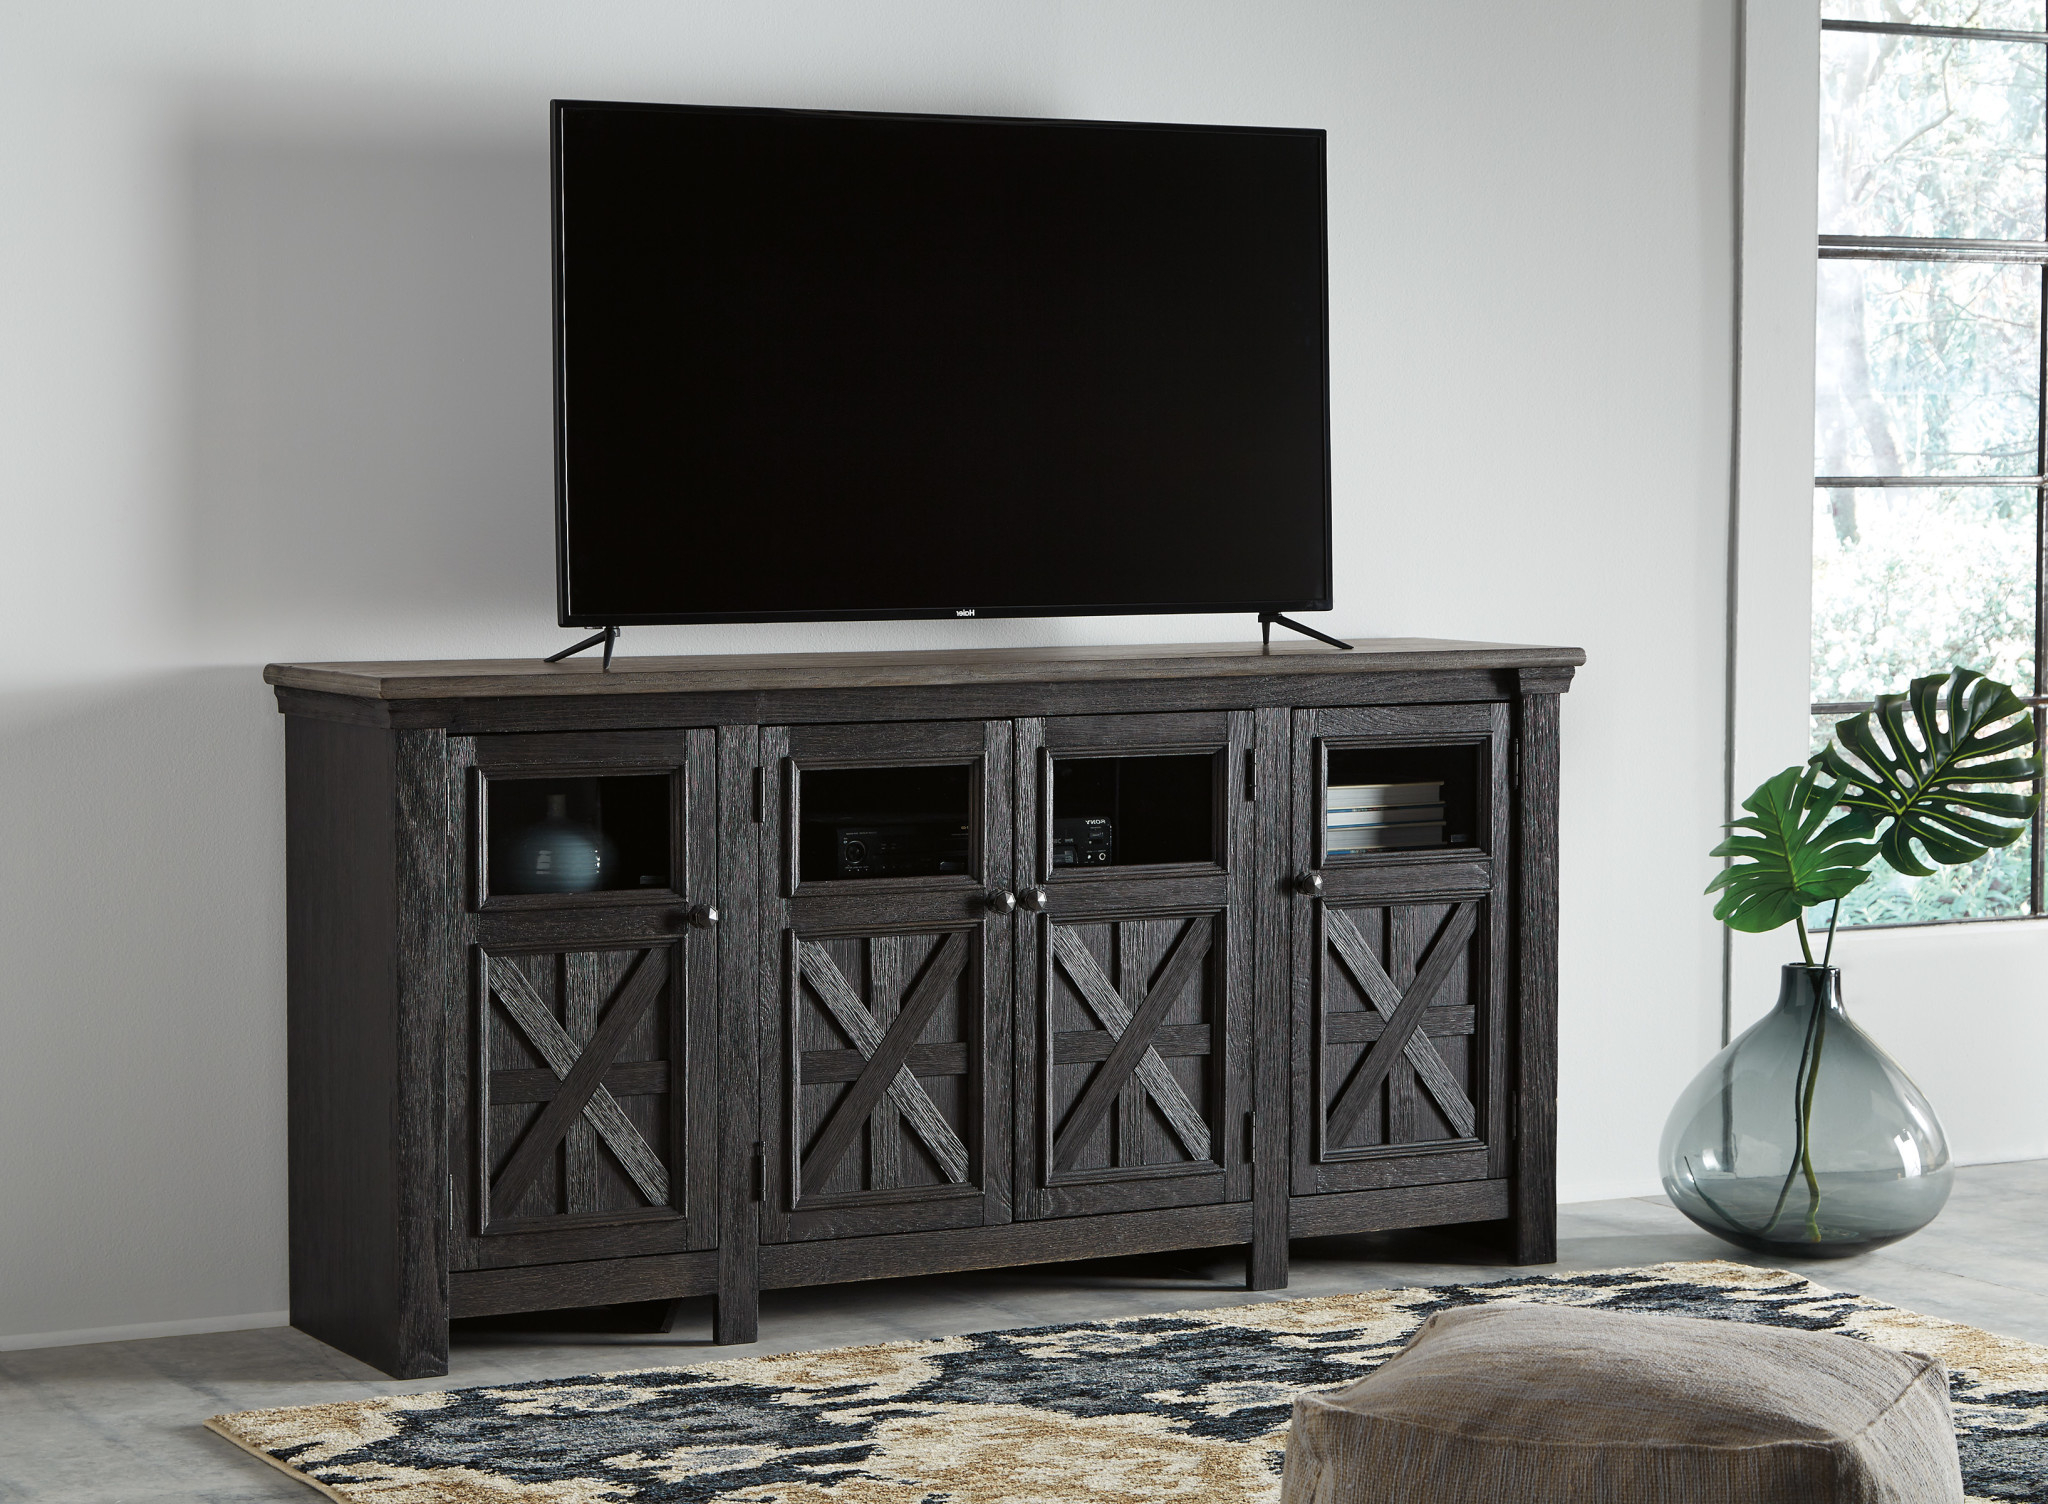 Delphi Grey Tv Stands Within Fashionable Extra Large Tv Stand, Tyler Creek, Black/gray, W736  (View 25 of 25)